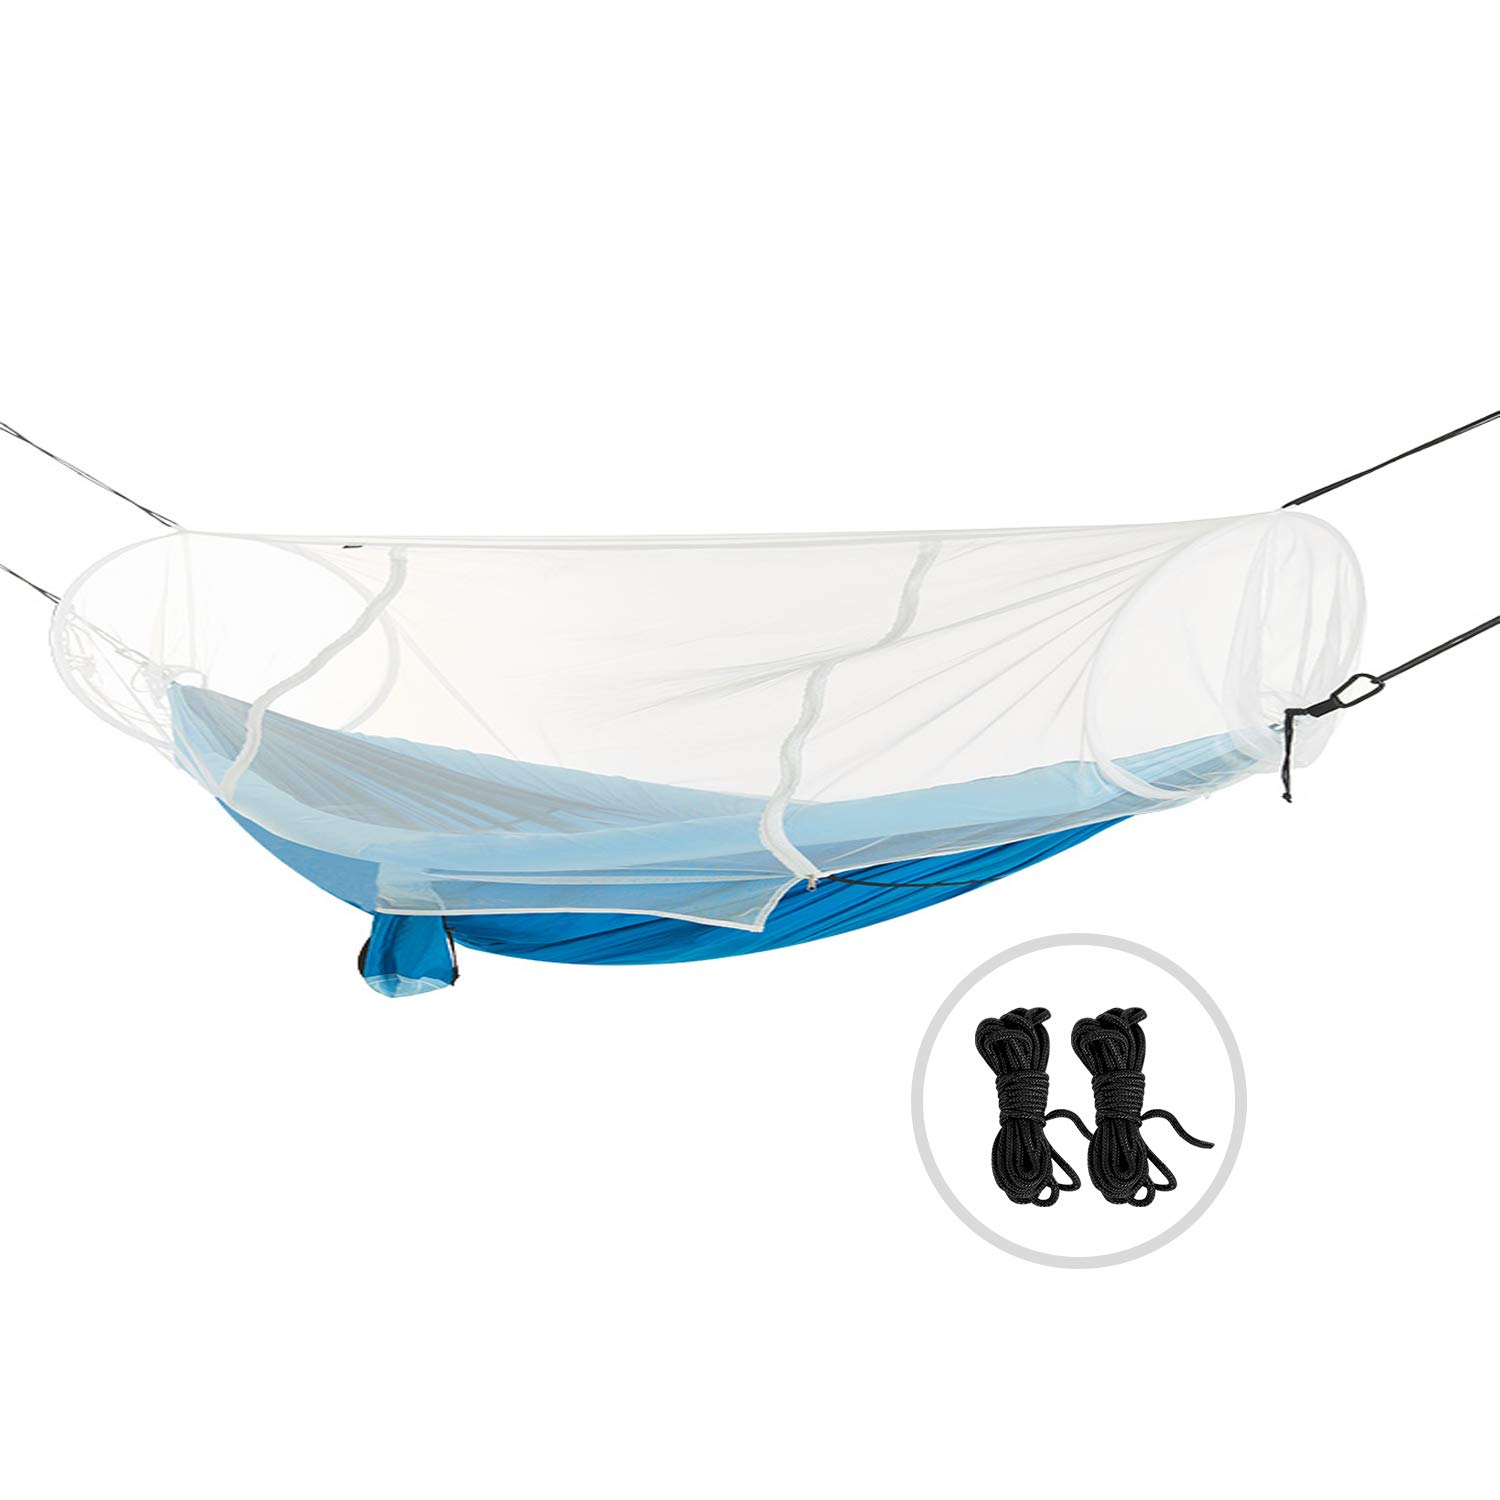 REDCAMP POP UP Hammock Mosquito Net with Zipper, Fast Easy Setup. Compact Hammock Bug Net Fits Single/Double Camping Hammocks, White by REDCAMP